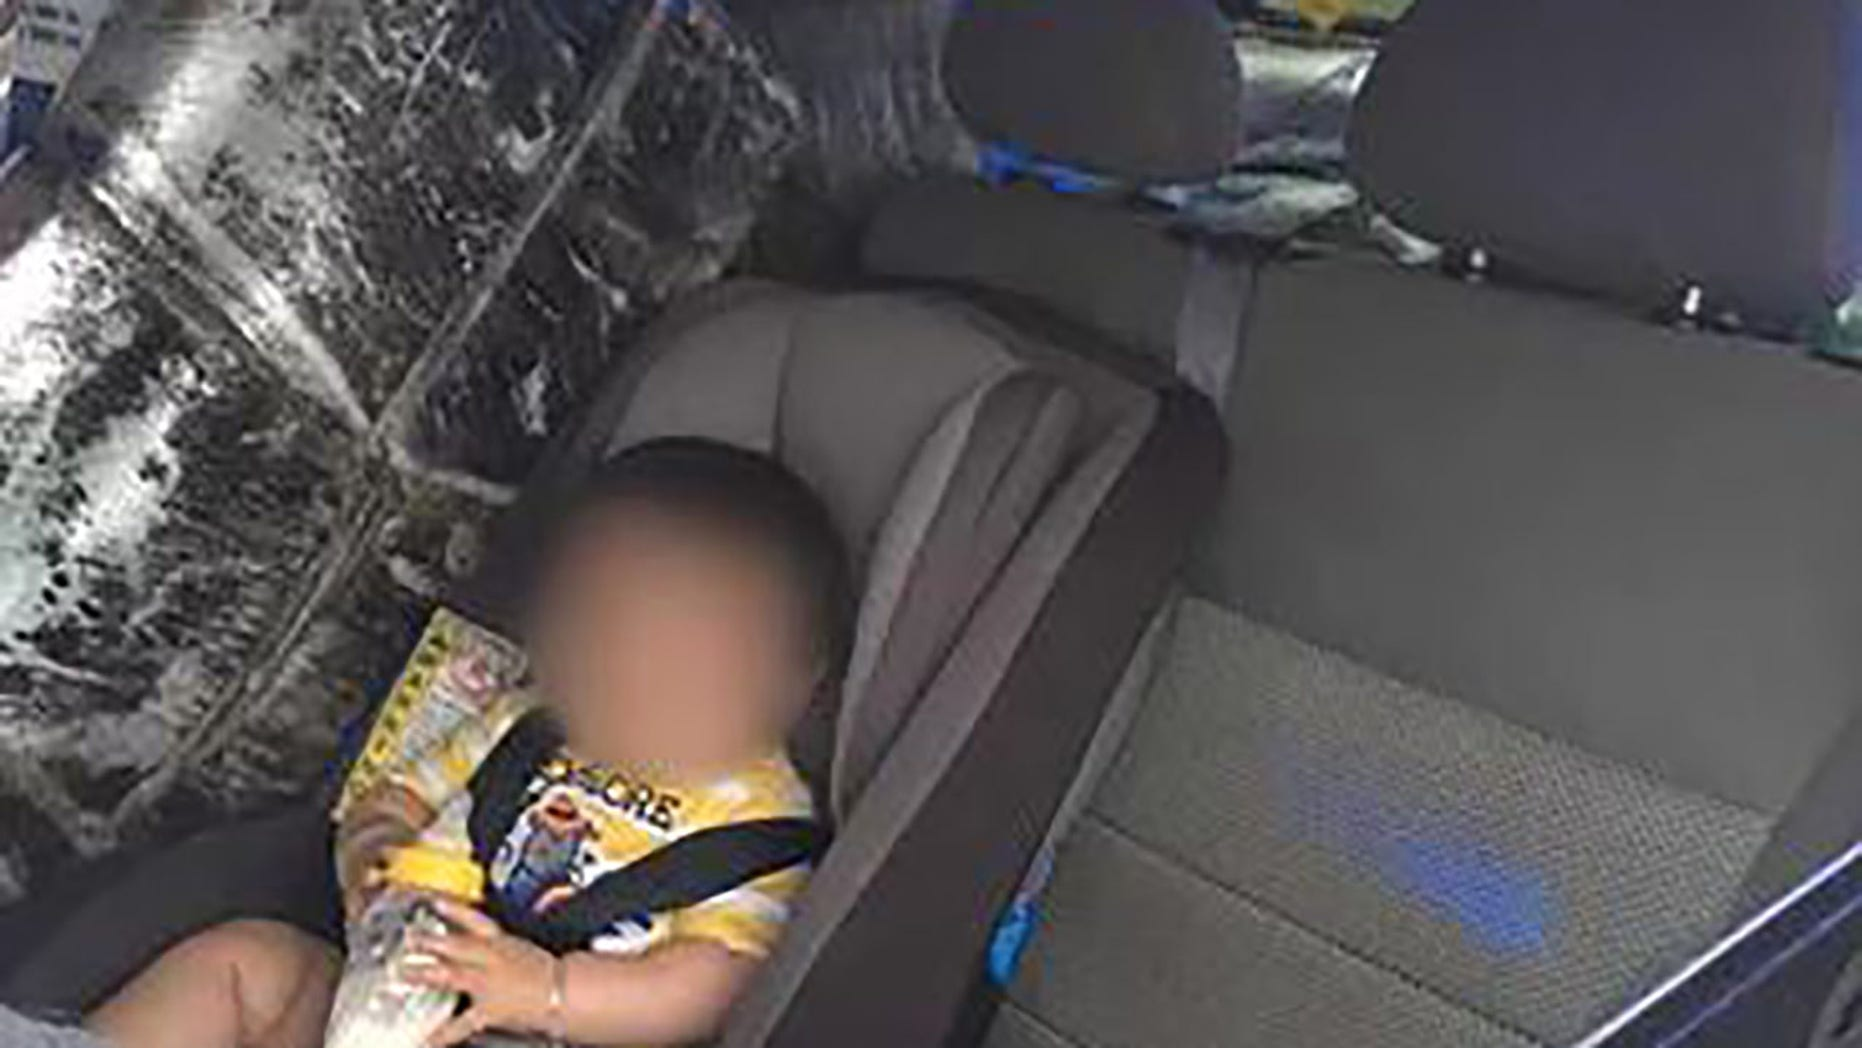 Westlake Legal Group baby-with-pot Texas cops find 275 pounds of pot next to baby in car seat, women arrested: report fox-news/us/us-regions/southwest/texas fox-news/us/crime/drugs fox news fnc/us fnc Brie Stimson article 767654f7-8928-5533-a8b3-ef2bd4ffd86d